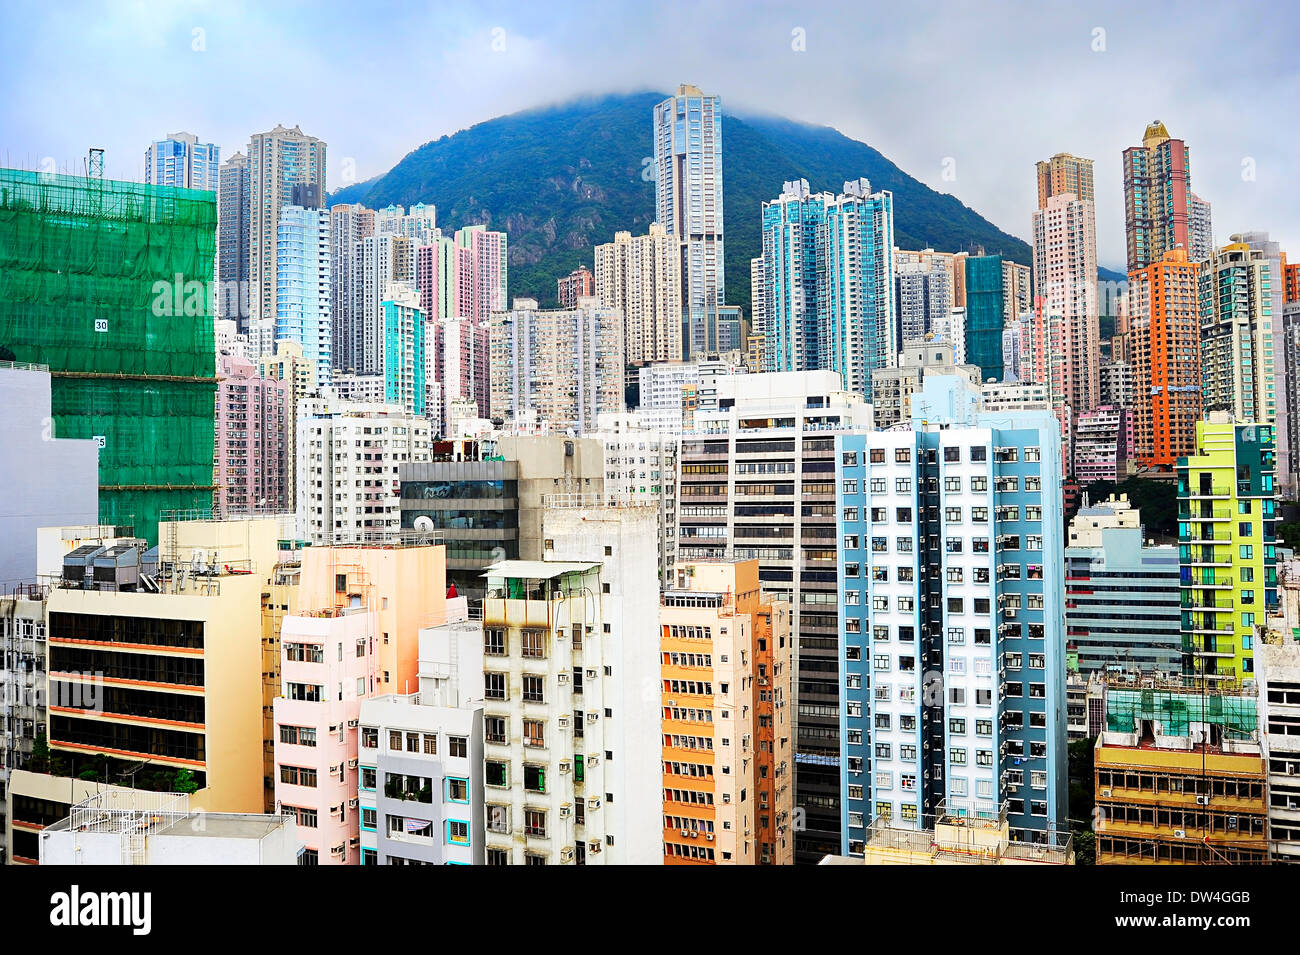 most densely populated places on earth